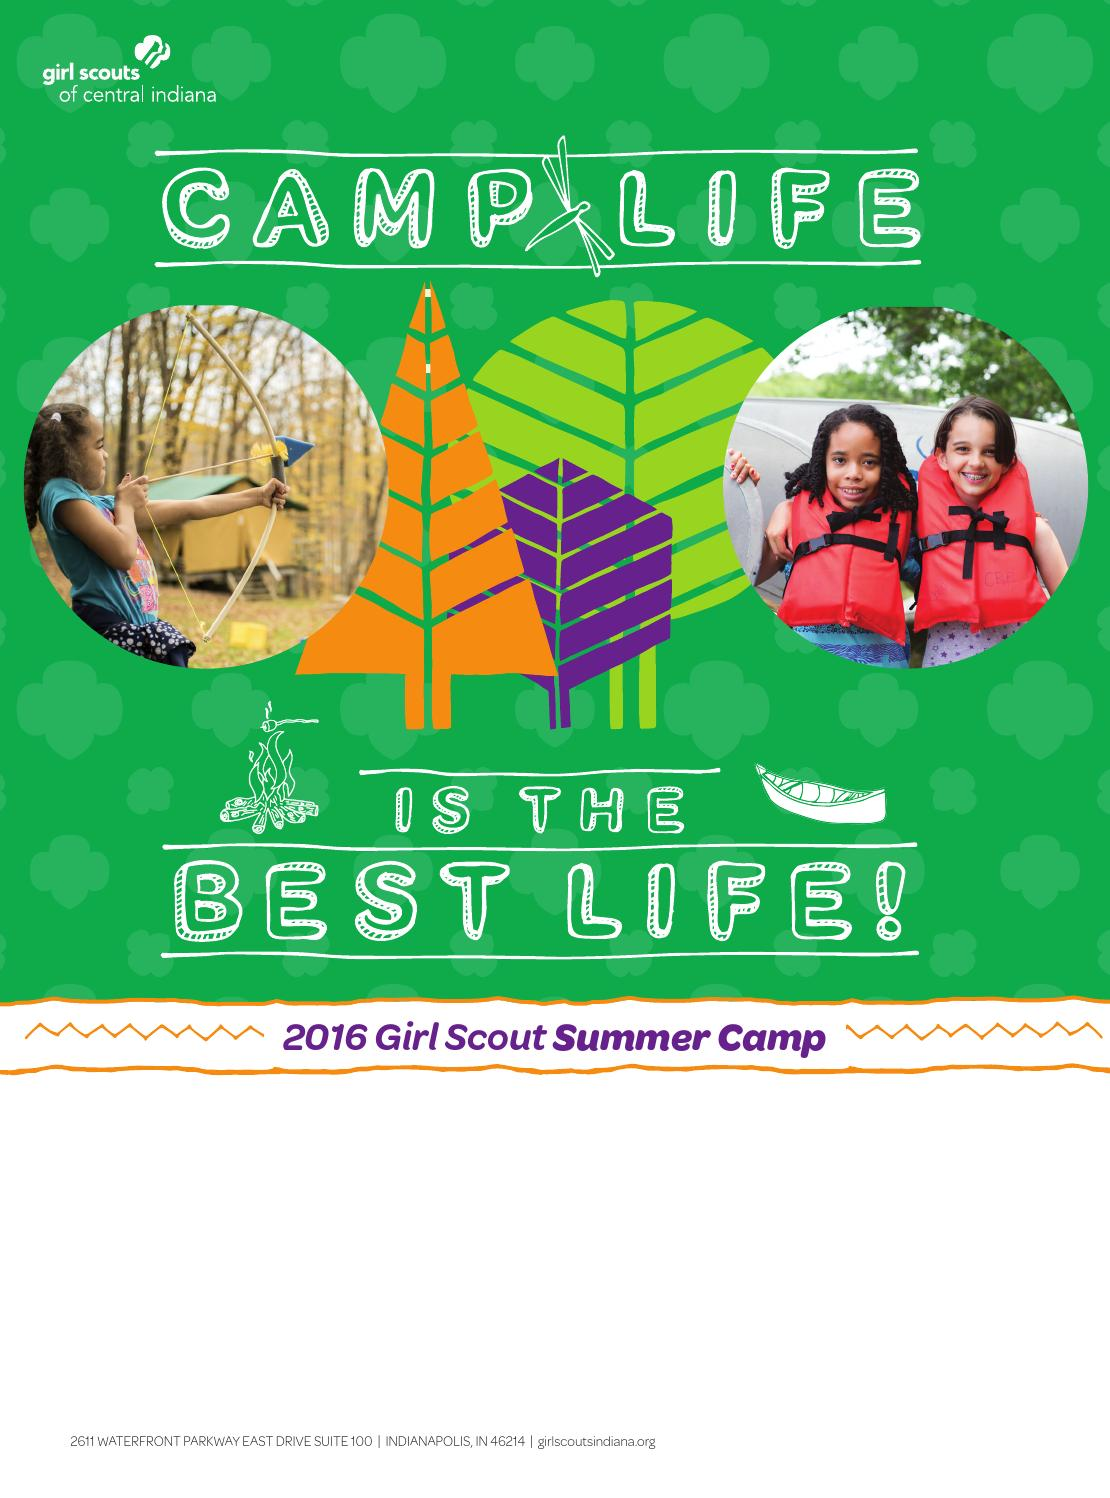 Spring Program Guide 2018 By Girl Scouts Of Central Indiana Issuu Hunter Pump Start Relay Wiring Diagram